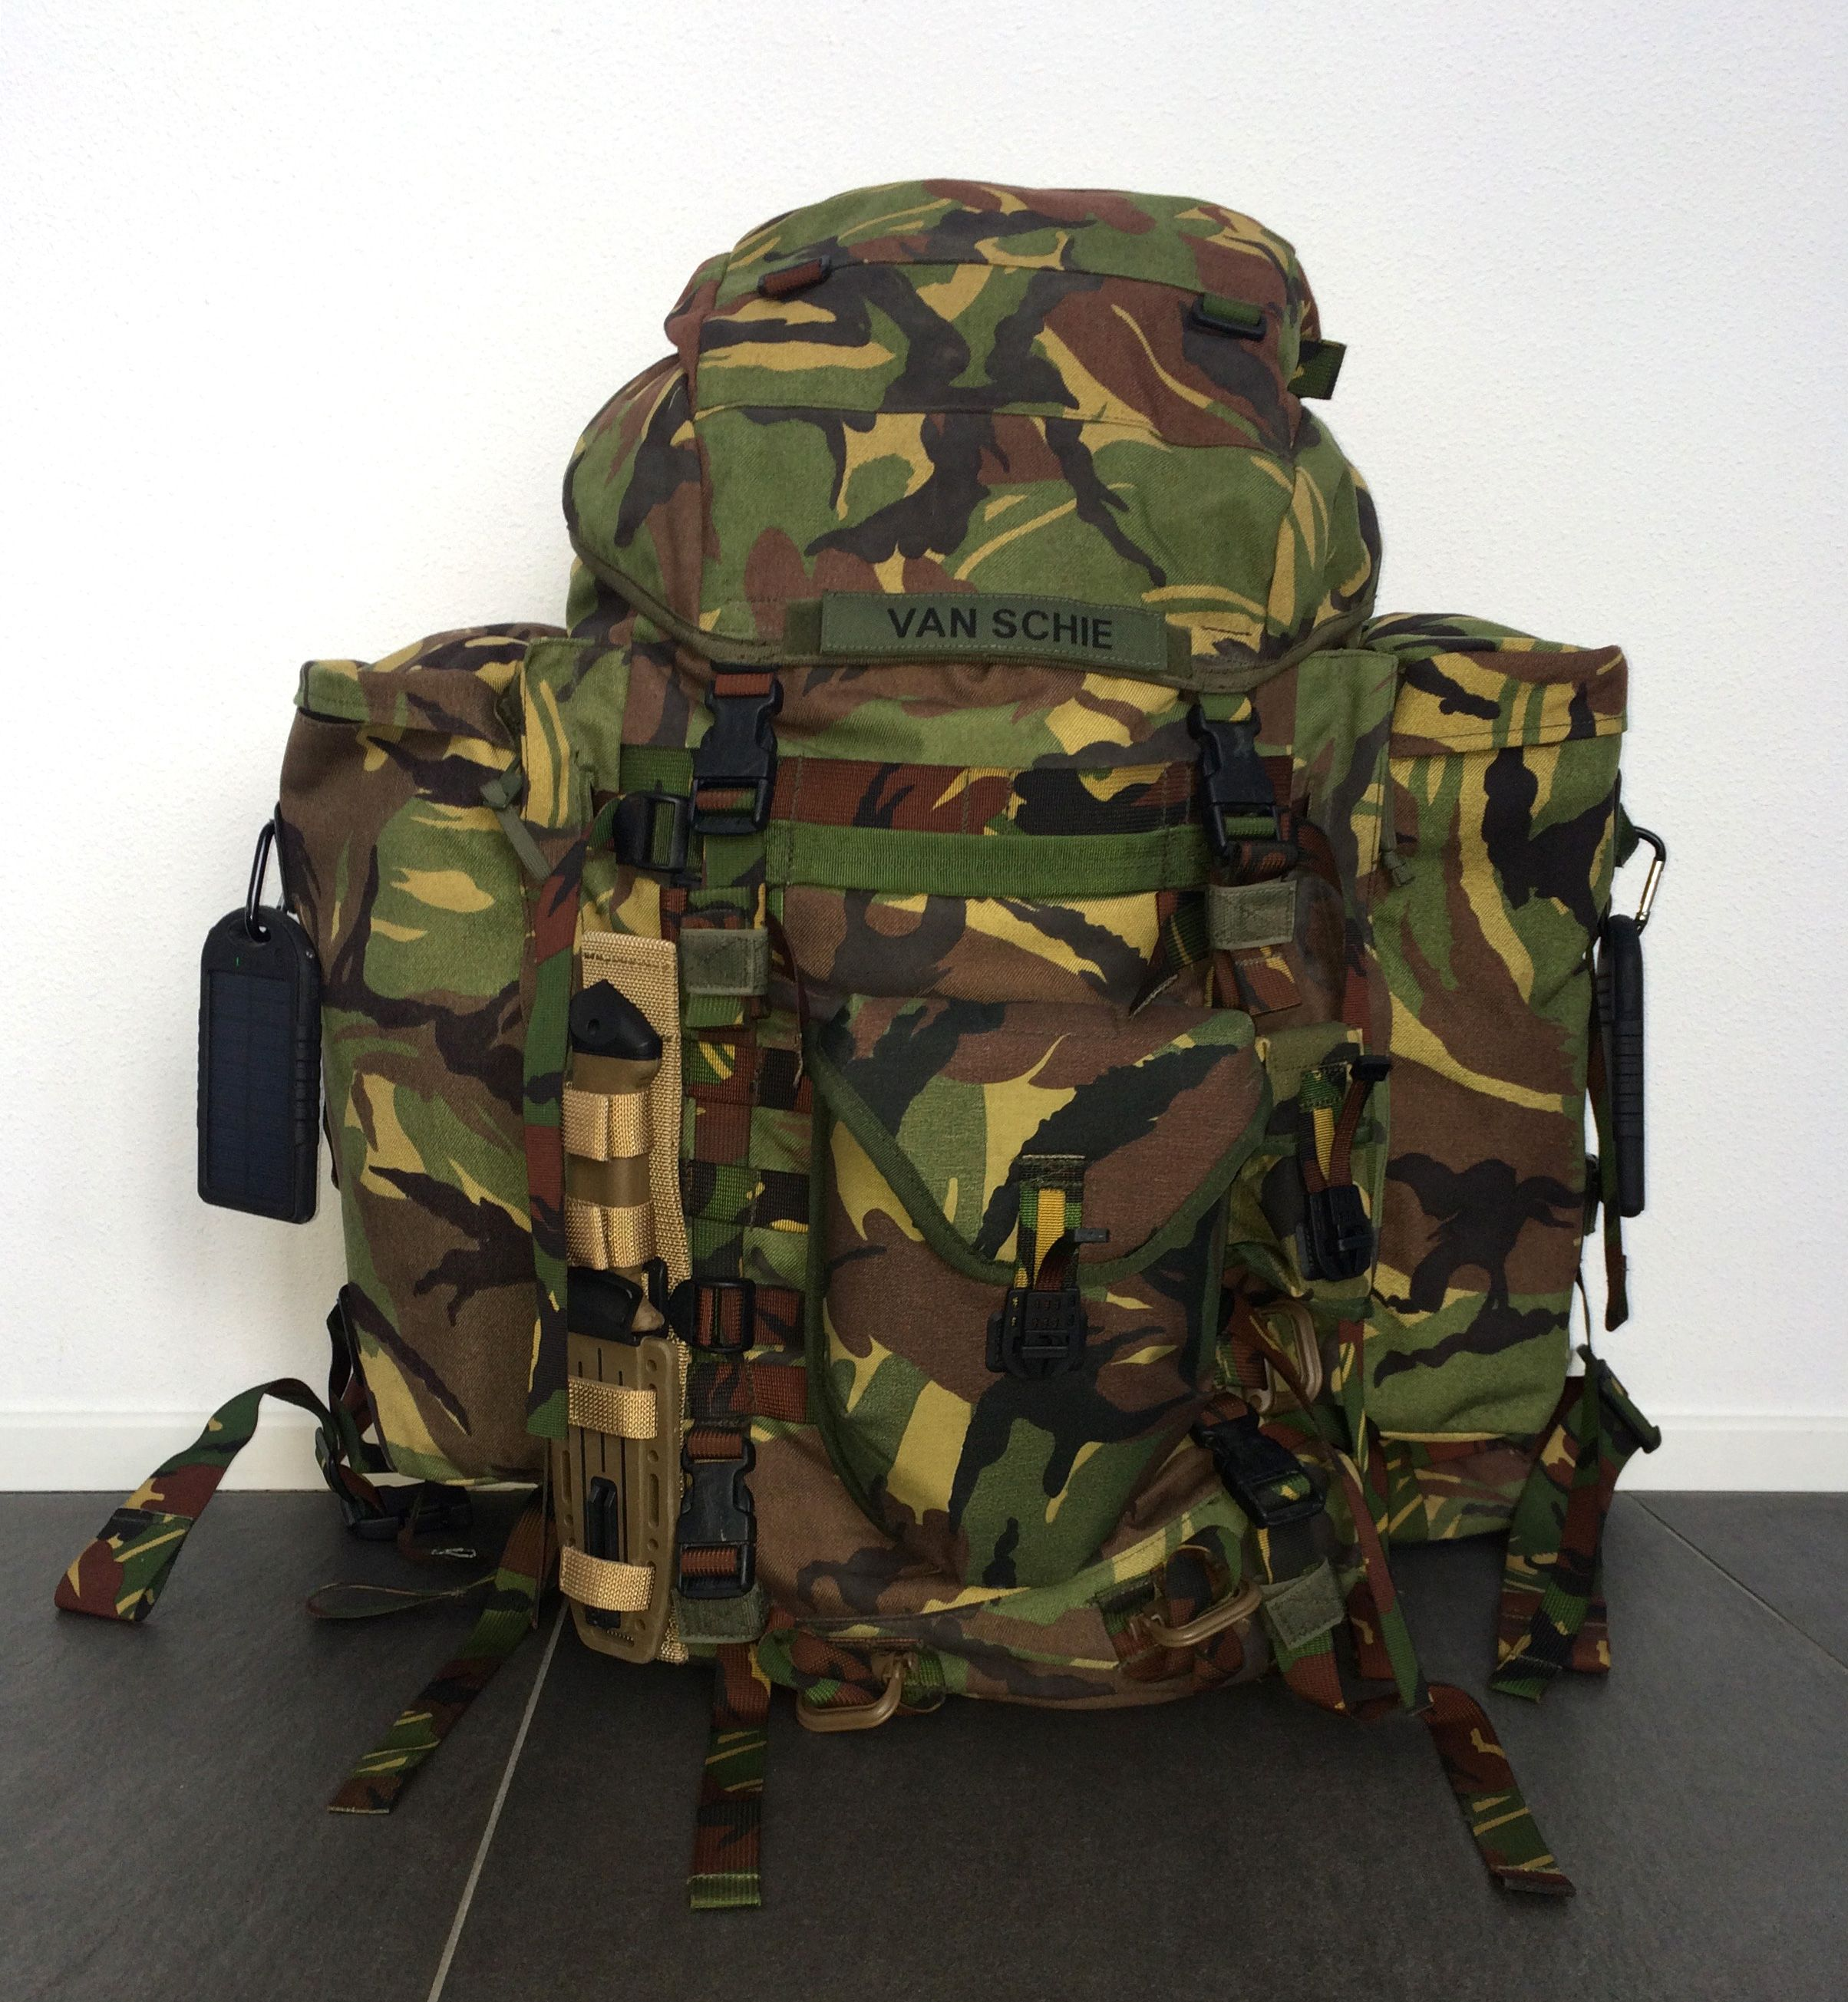 My 80 liter Lowe Alpine Sting (Dutch army issue) backpack in